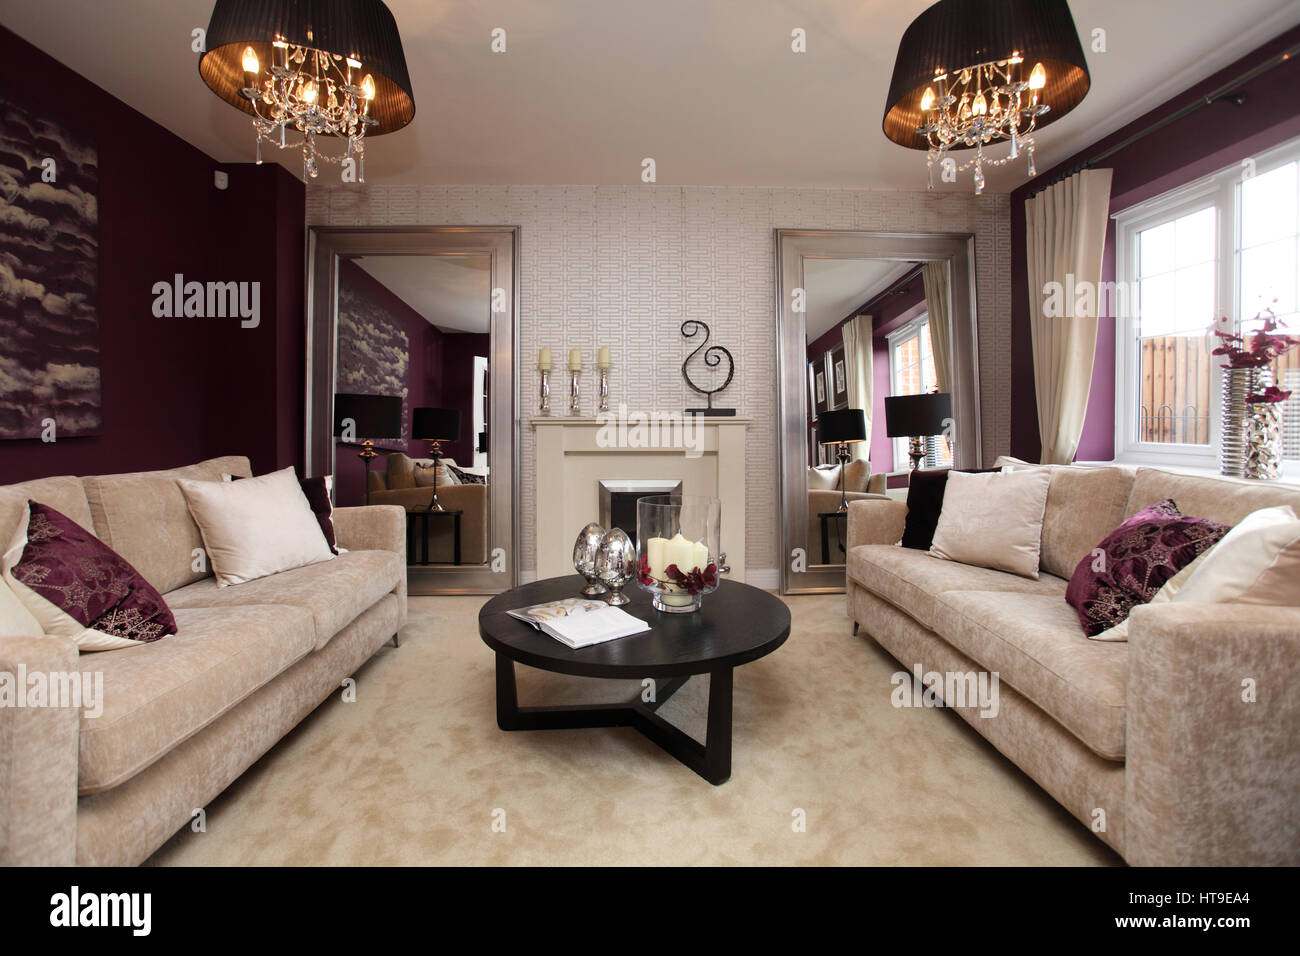 Home Interior Lounge Living Room Purple Decor Feature Wall Beige